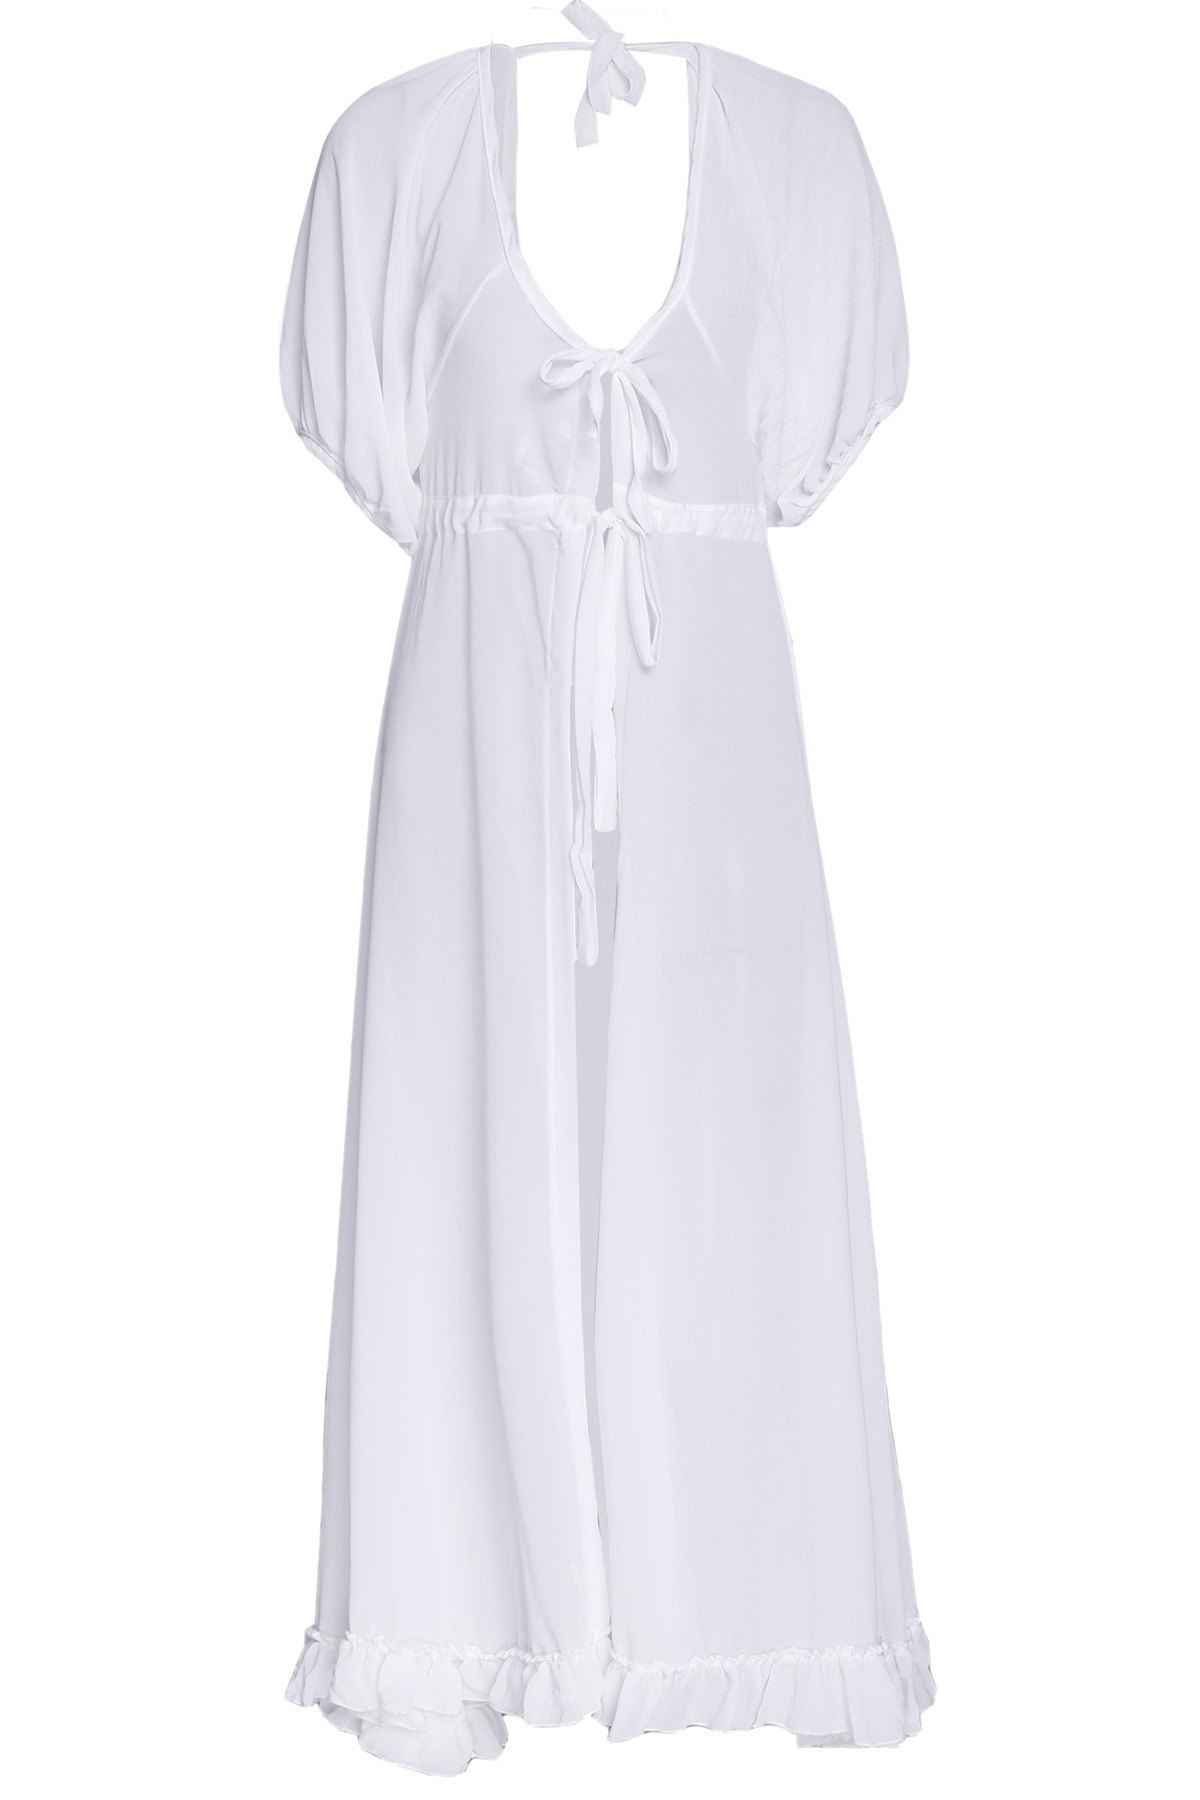 Women's Charming Lace Up White Chiffon Cover-Up - WHITE ONE SIZE